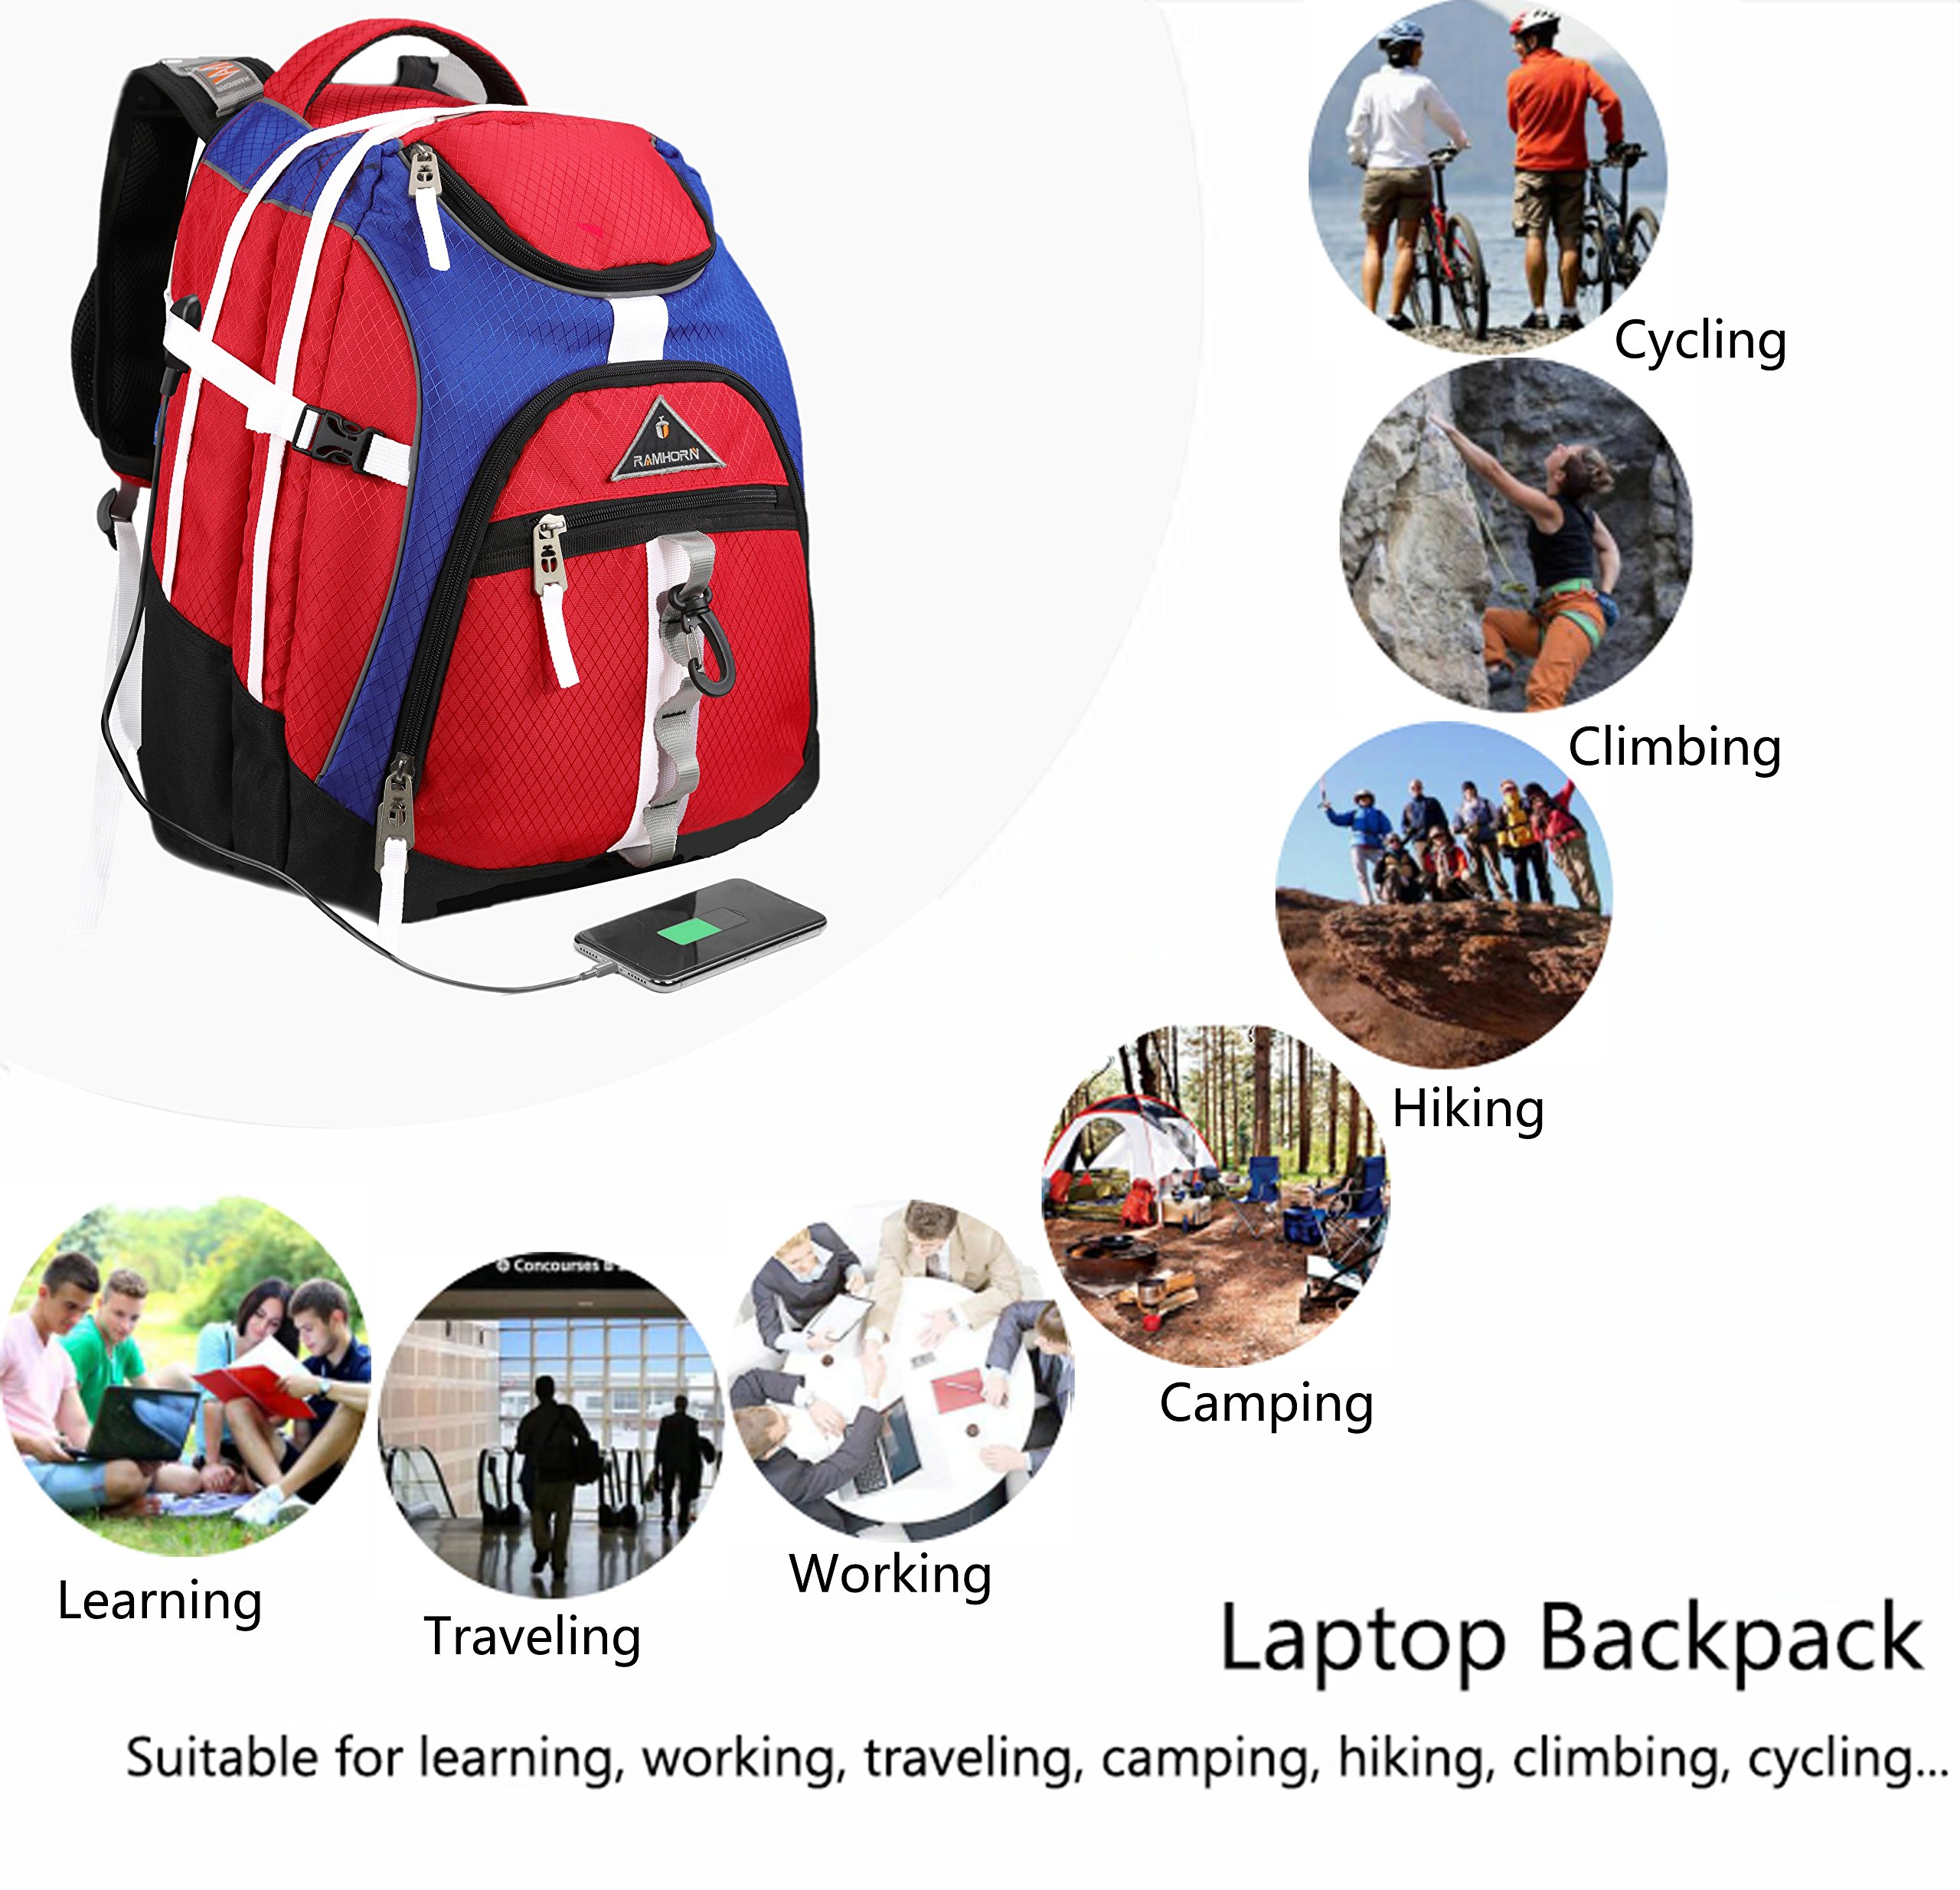 Laptop Backpack 15.6-Inch Business College Travel Computer Bag for Surface Water-Resistant Waterproof USB Charging Port Slim Light Weight Reflective Strip Rain Cover Large Capacity by Ramhorn(warmred) by Ramhorn (Image #9)